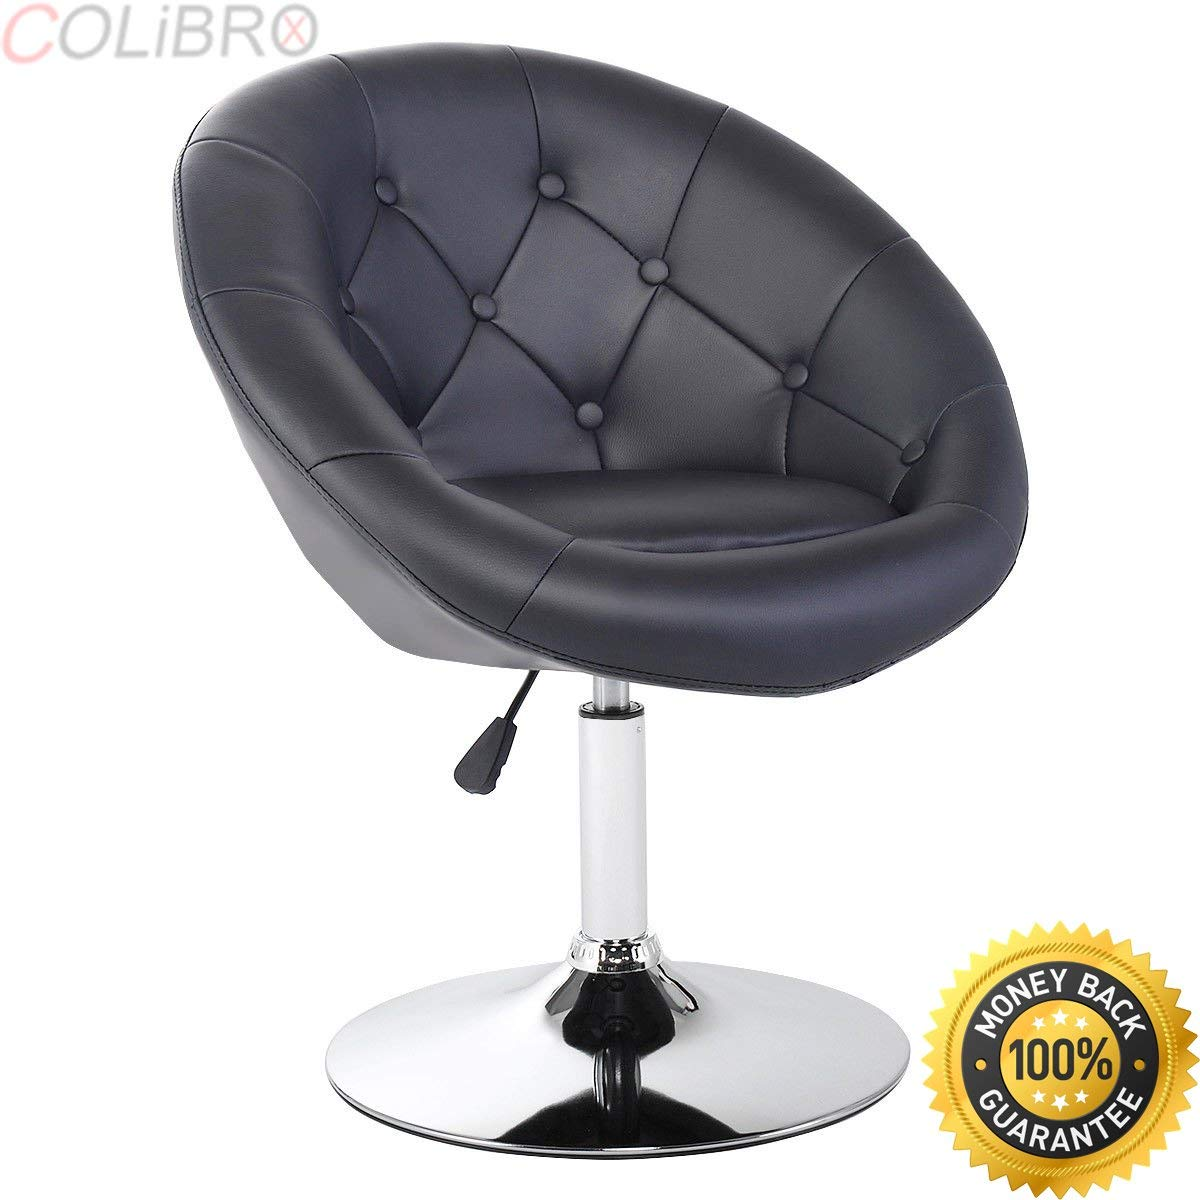 COLIBROX--1PC Adjustable Modern Swivel Round Tufted Back Accent Chair PU Leather Black New. faux leather chairs cheap. modern leather accent chairs. adjustable height living room black chairs amazon.